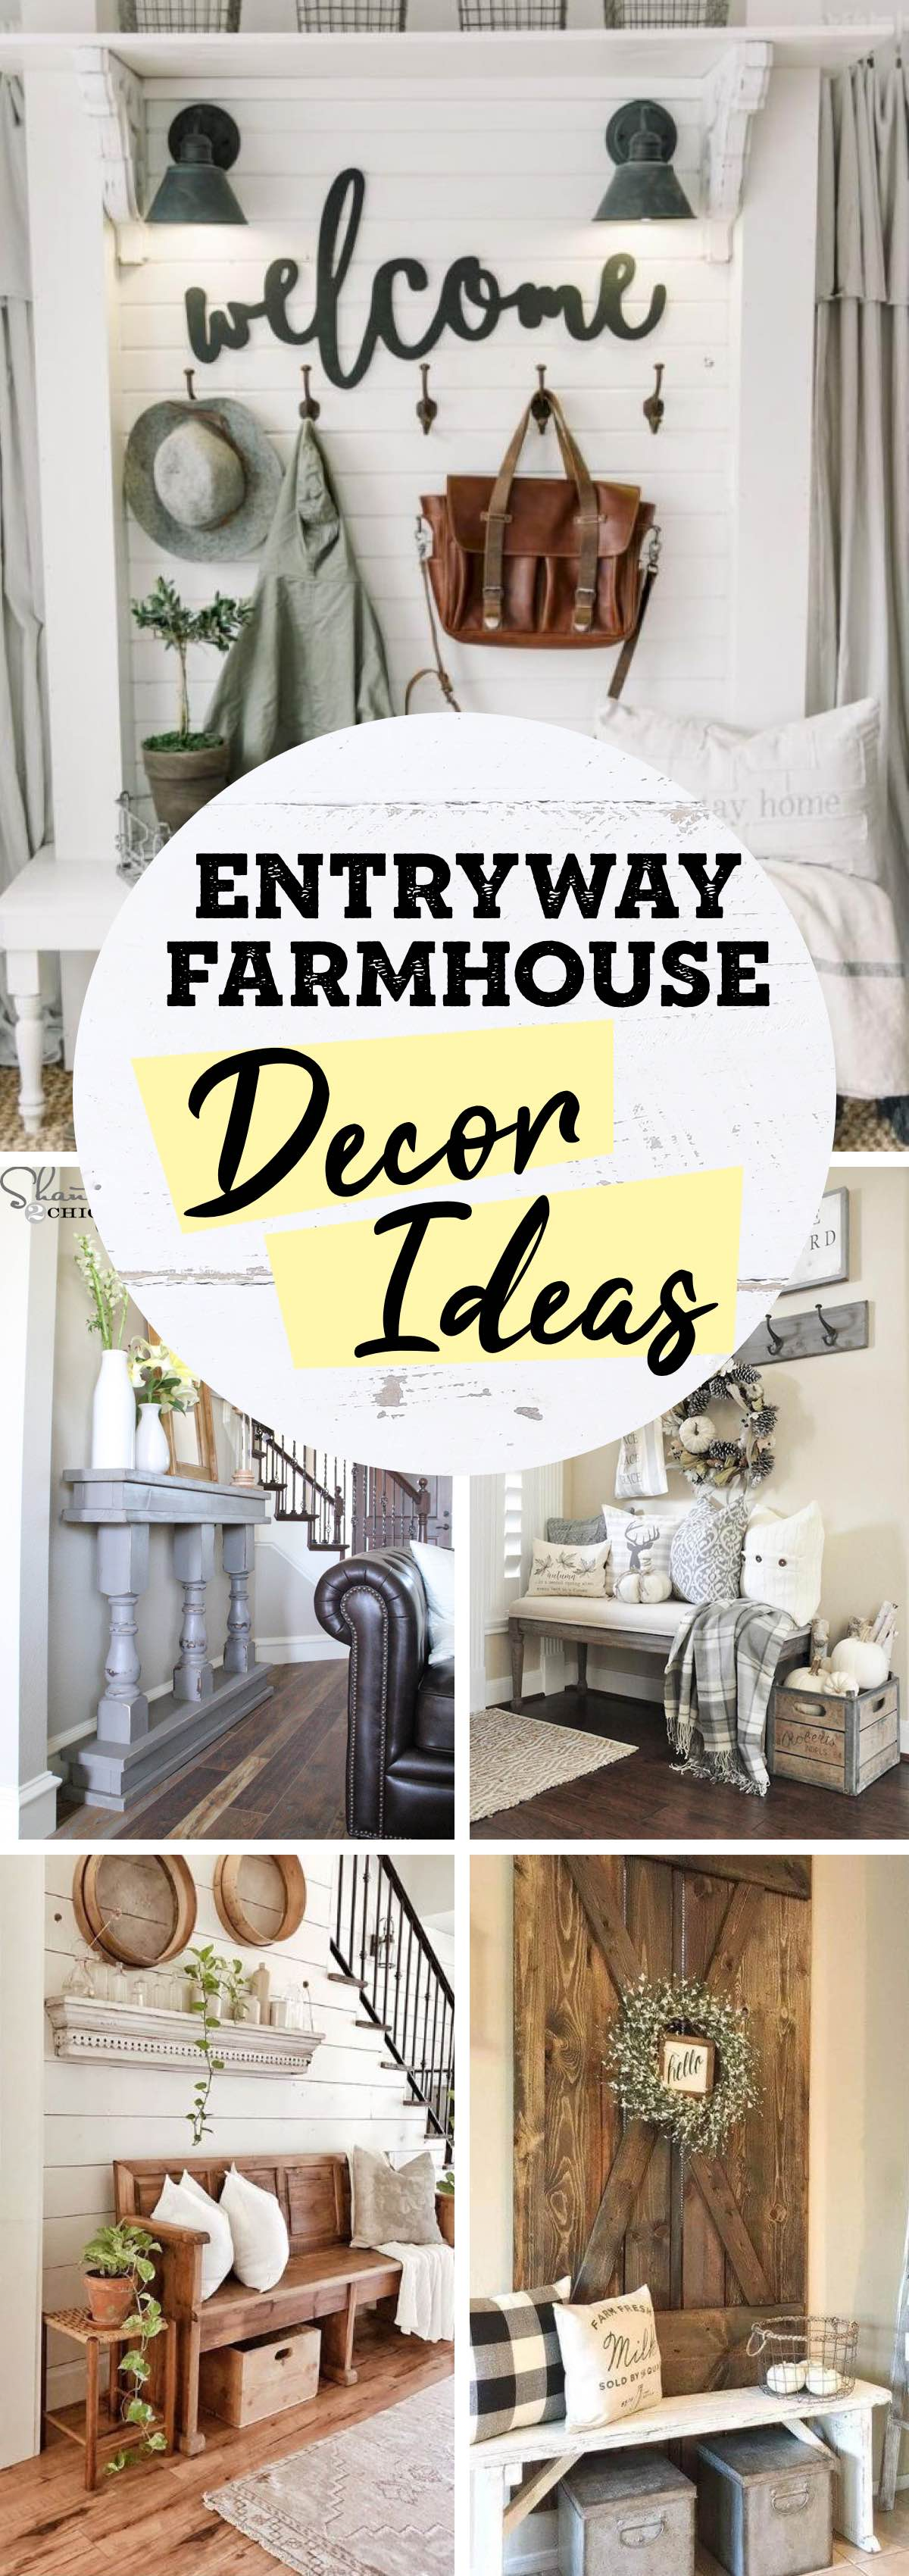 18 Entryway Farmhouse Decor Ideas That Are Beautiful and Functional at the Same Time!